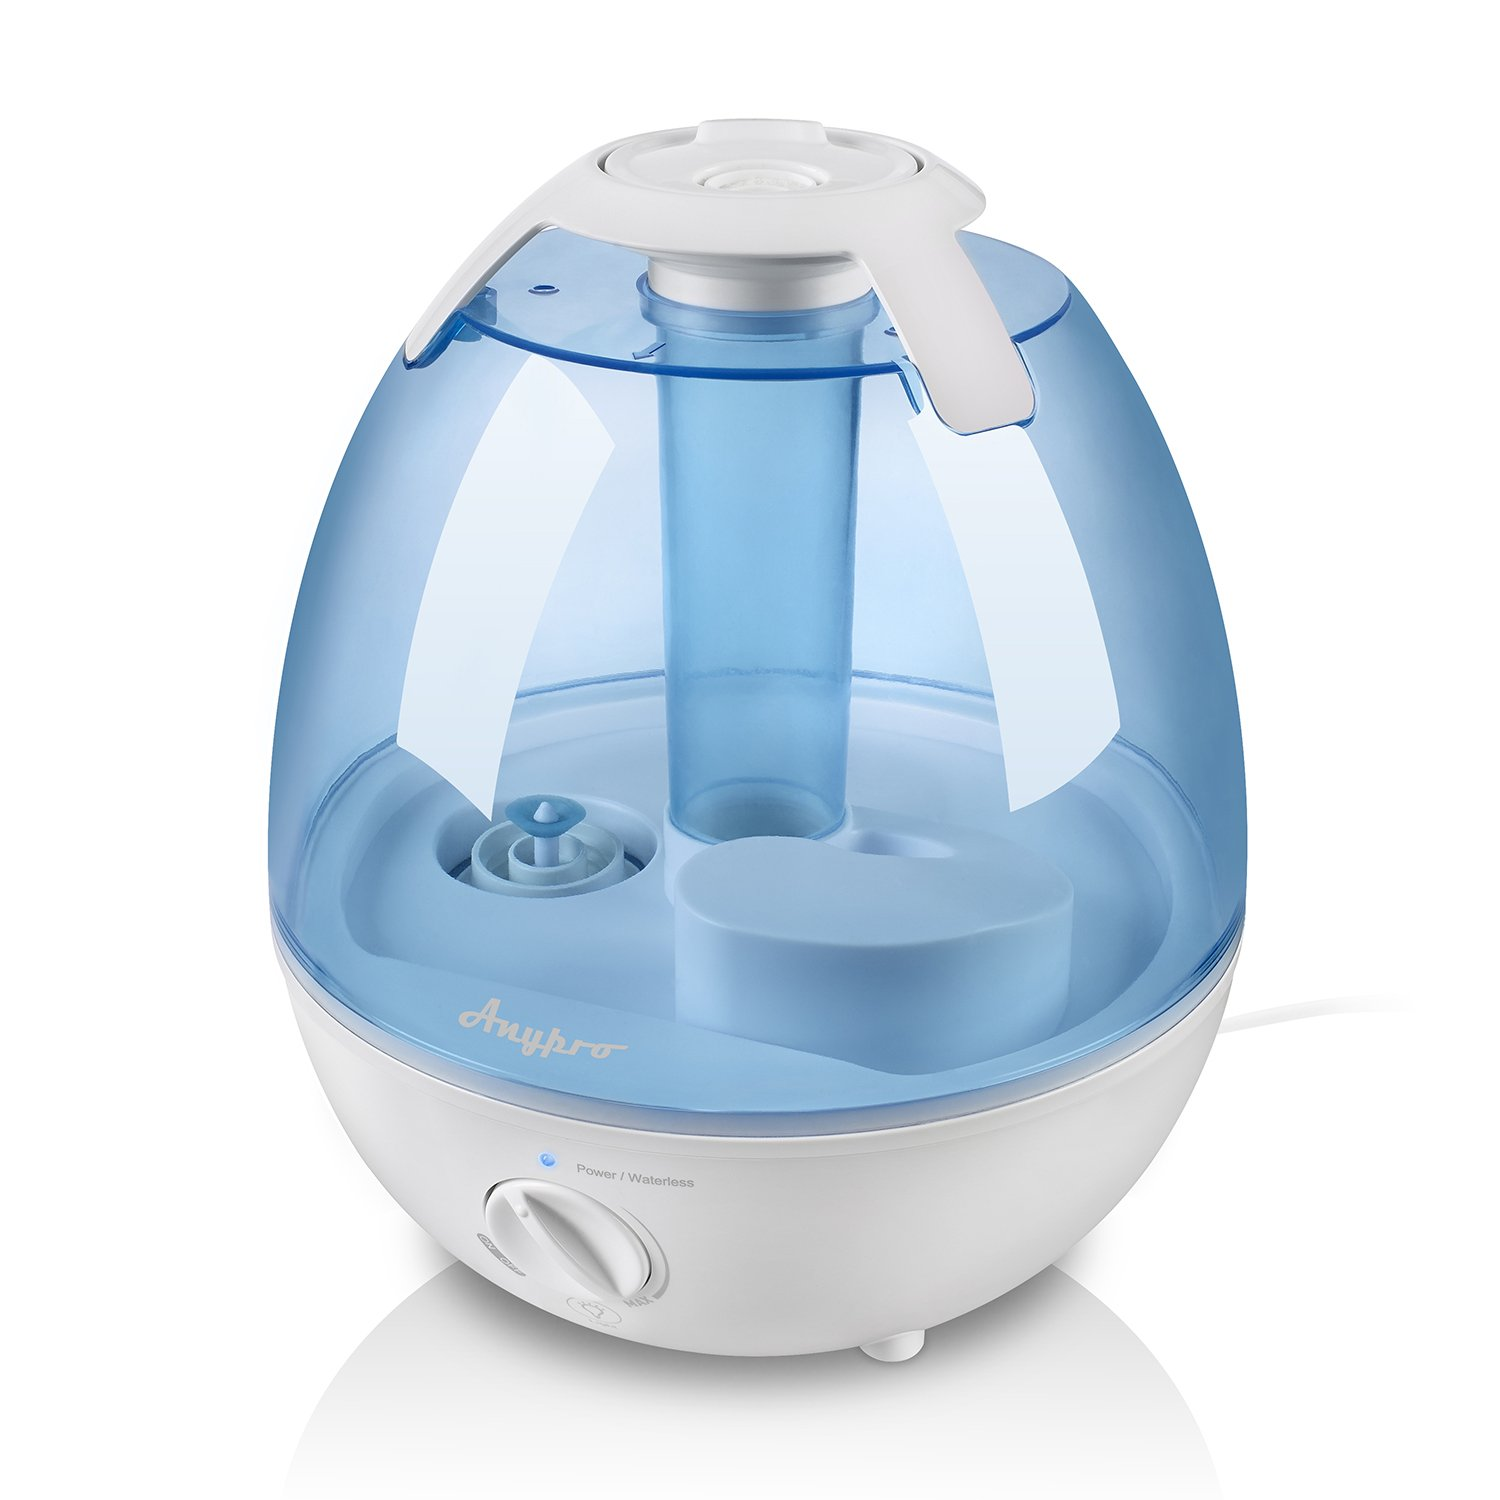 Ultrasonic cool mist humidifier anypro 3 5l air humidifiers with no sales tax ebay - Humidifier l air naturellement ...